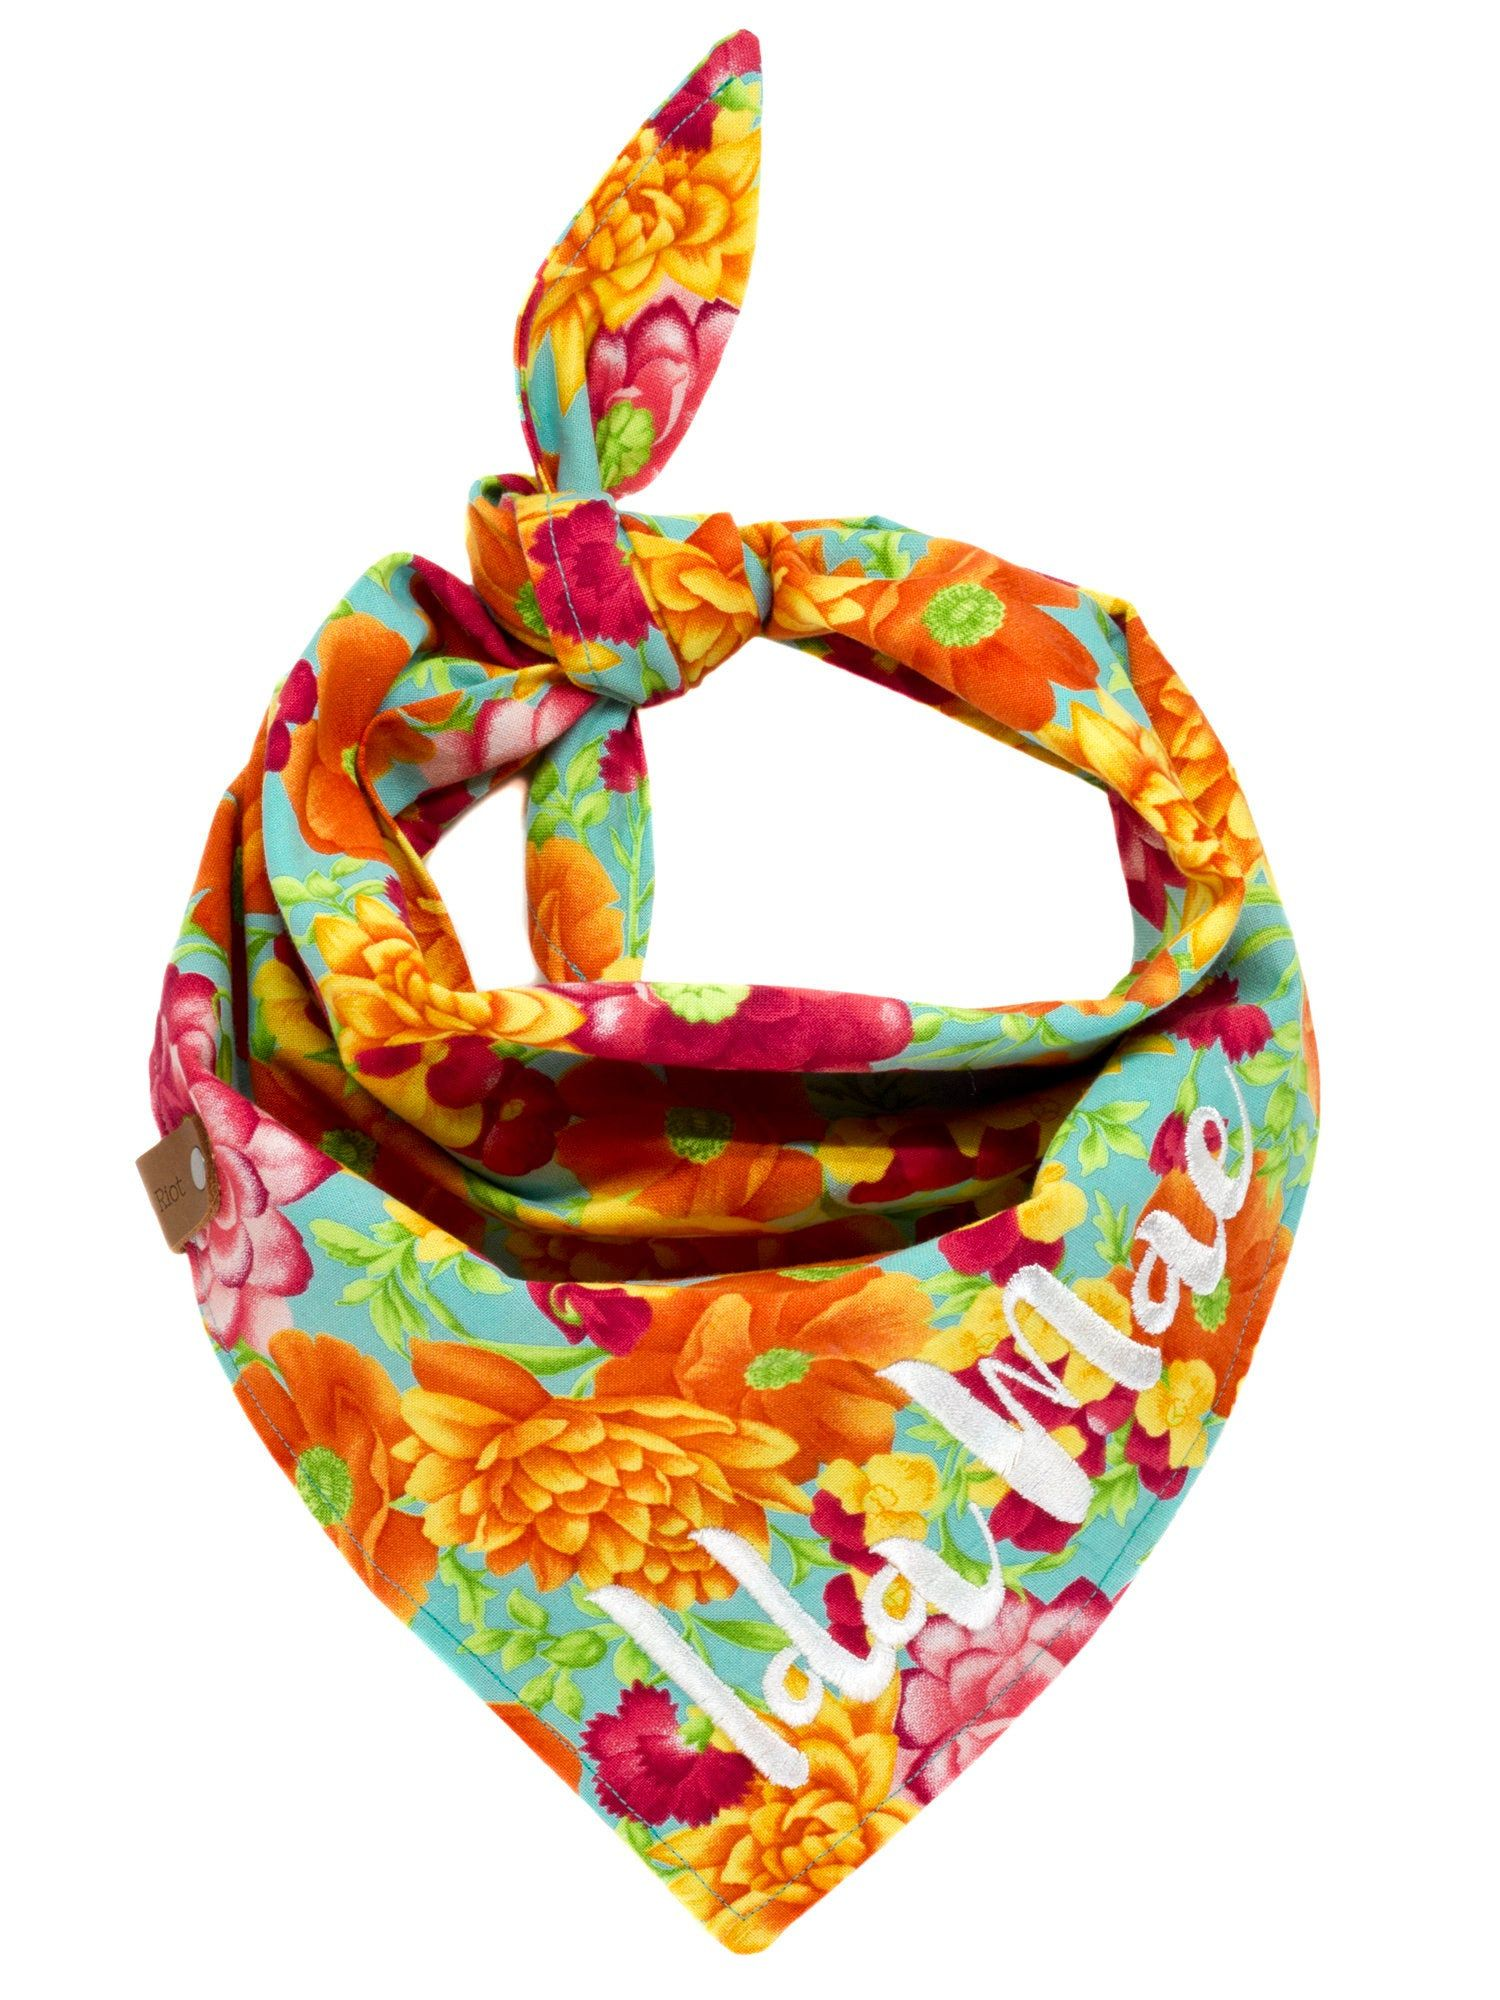 17108aa506e31 Summer Floral Dog Bandana, Scarves Puppy Flowers, Bright Cheerful Pet  Bandanna, Red Orange